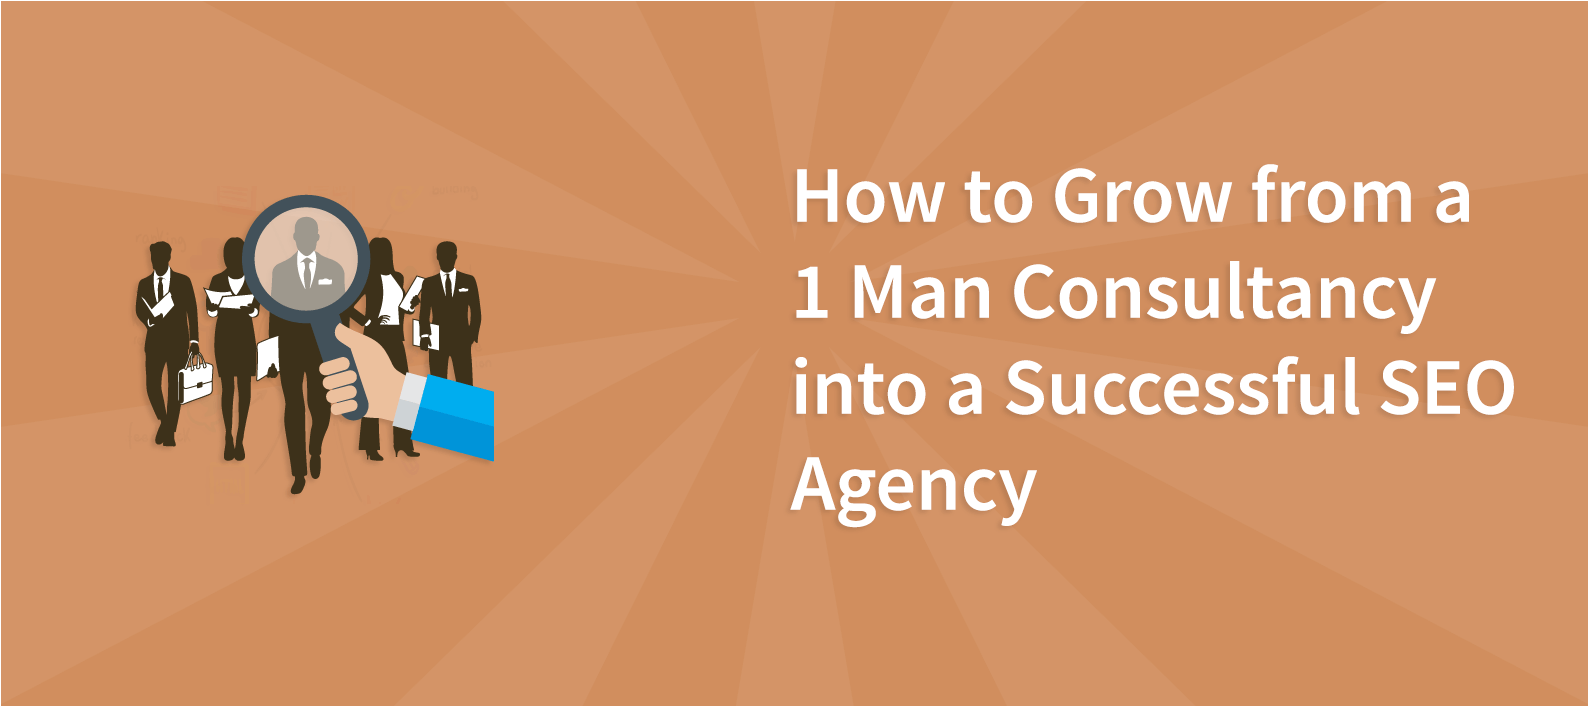 How to grow from a 1 man consultancy into a successful SEO agency